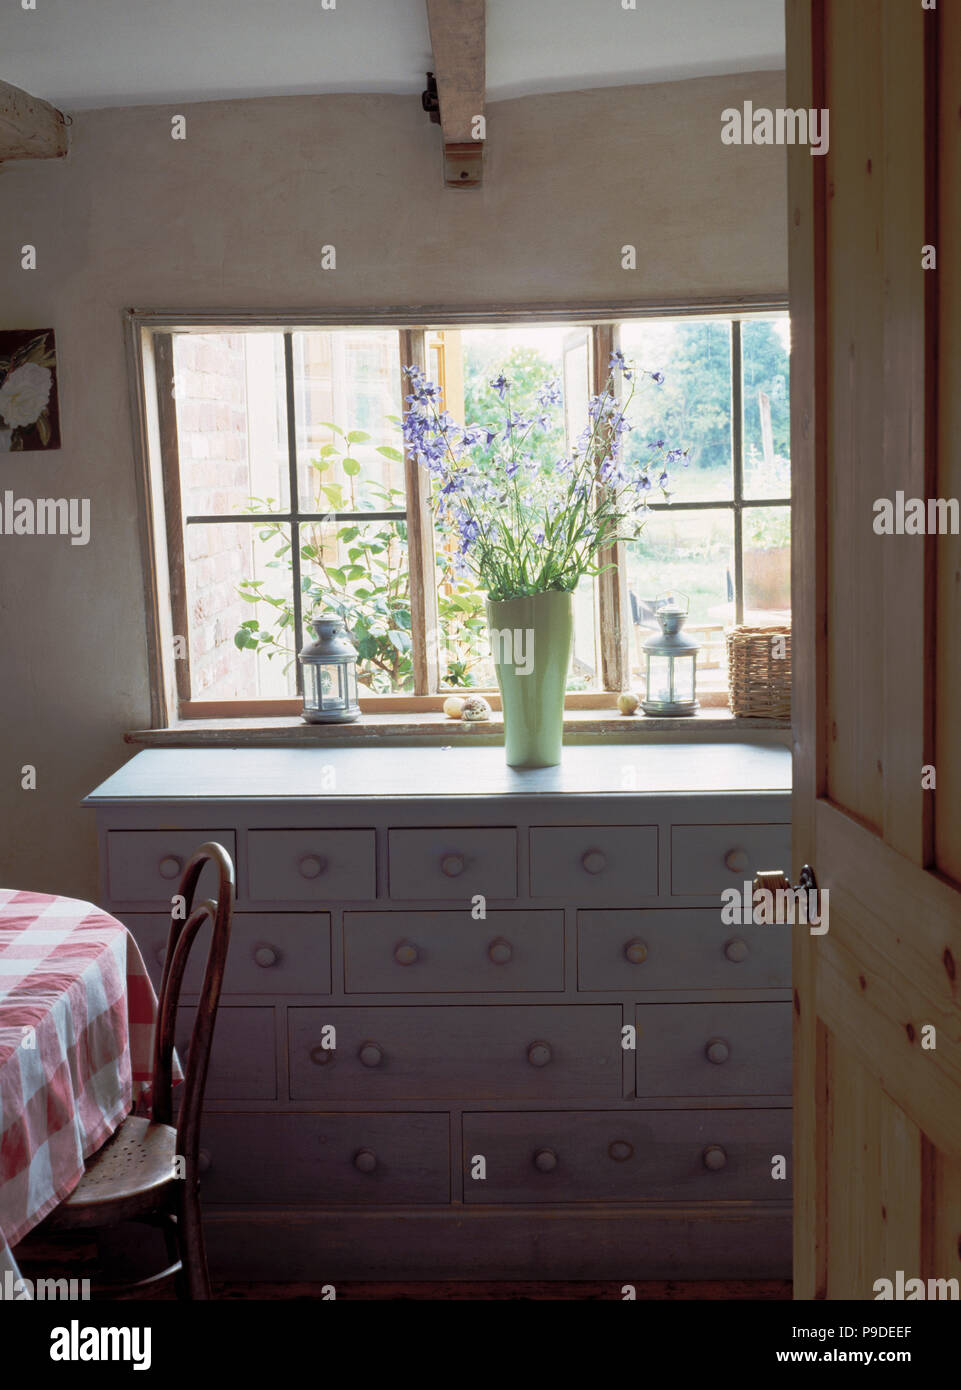 Door Open To Vase Of Flowers On White Painted Chest Of Drawers Below Window  In White Cottage Dining Room